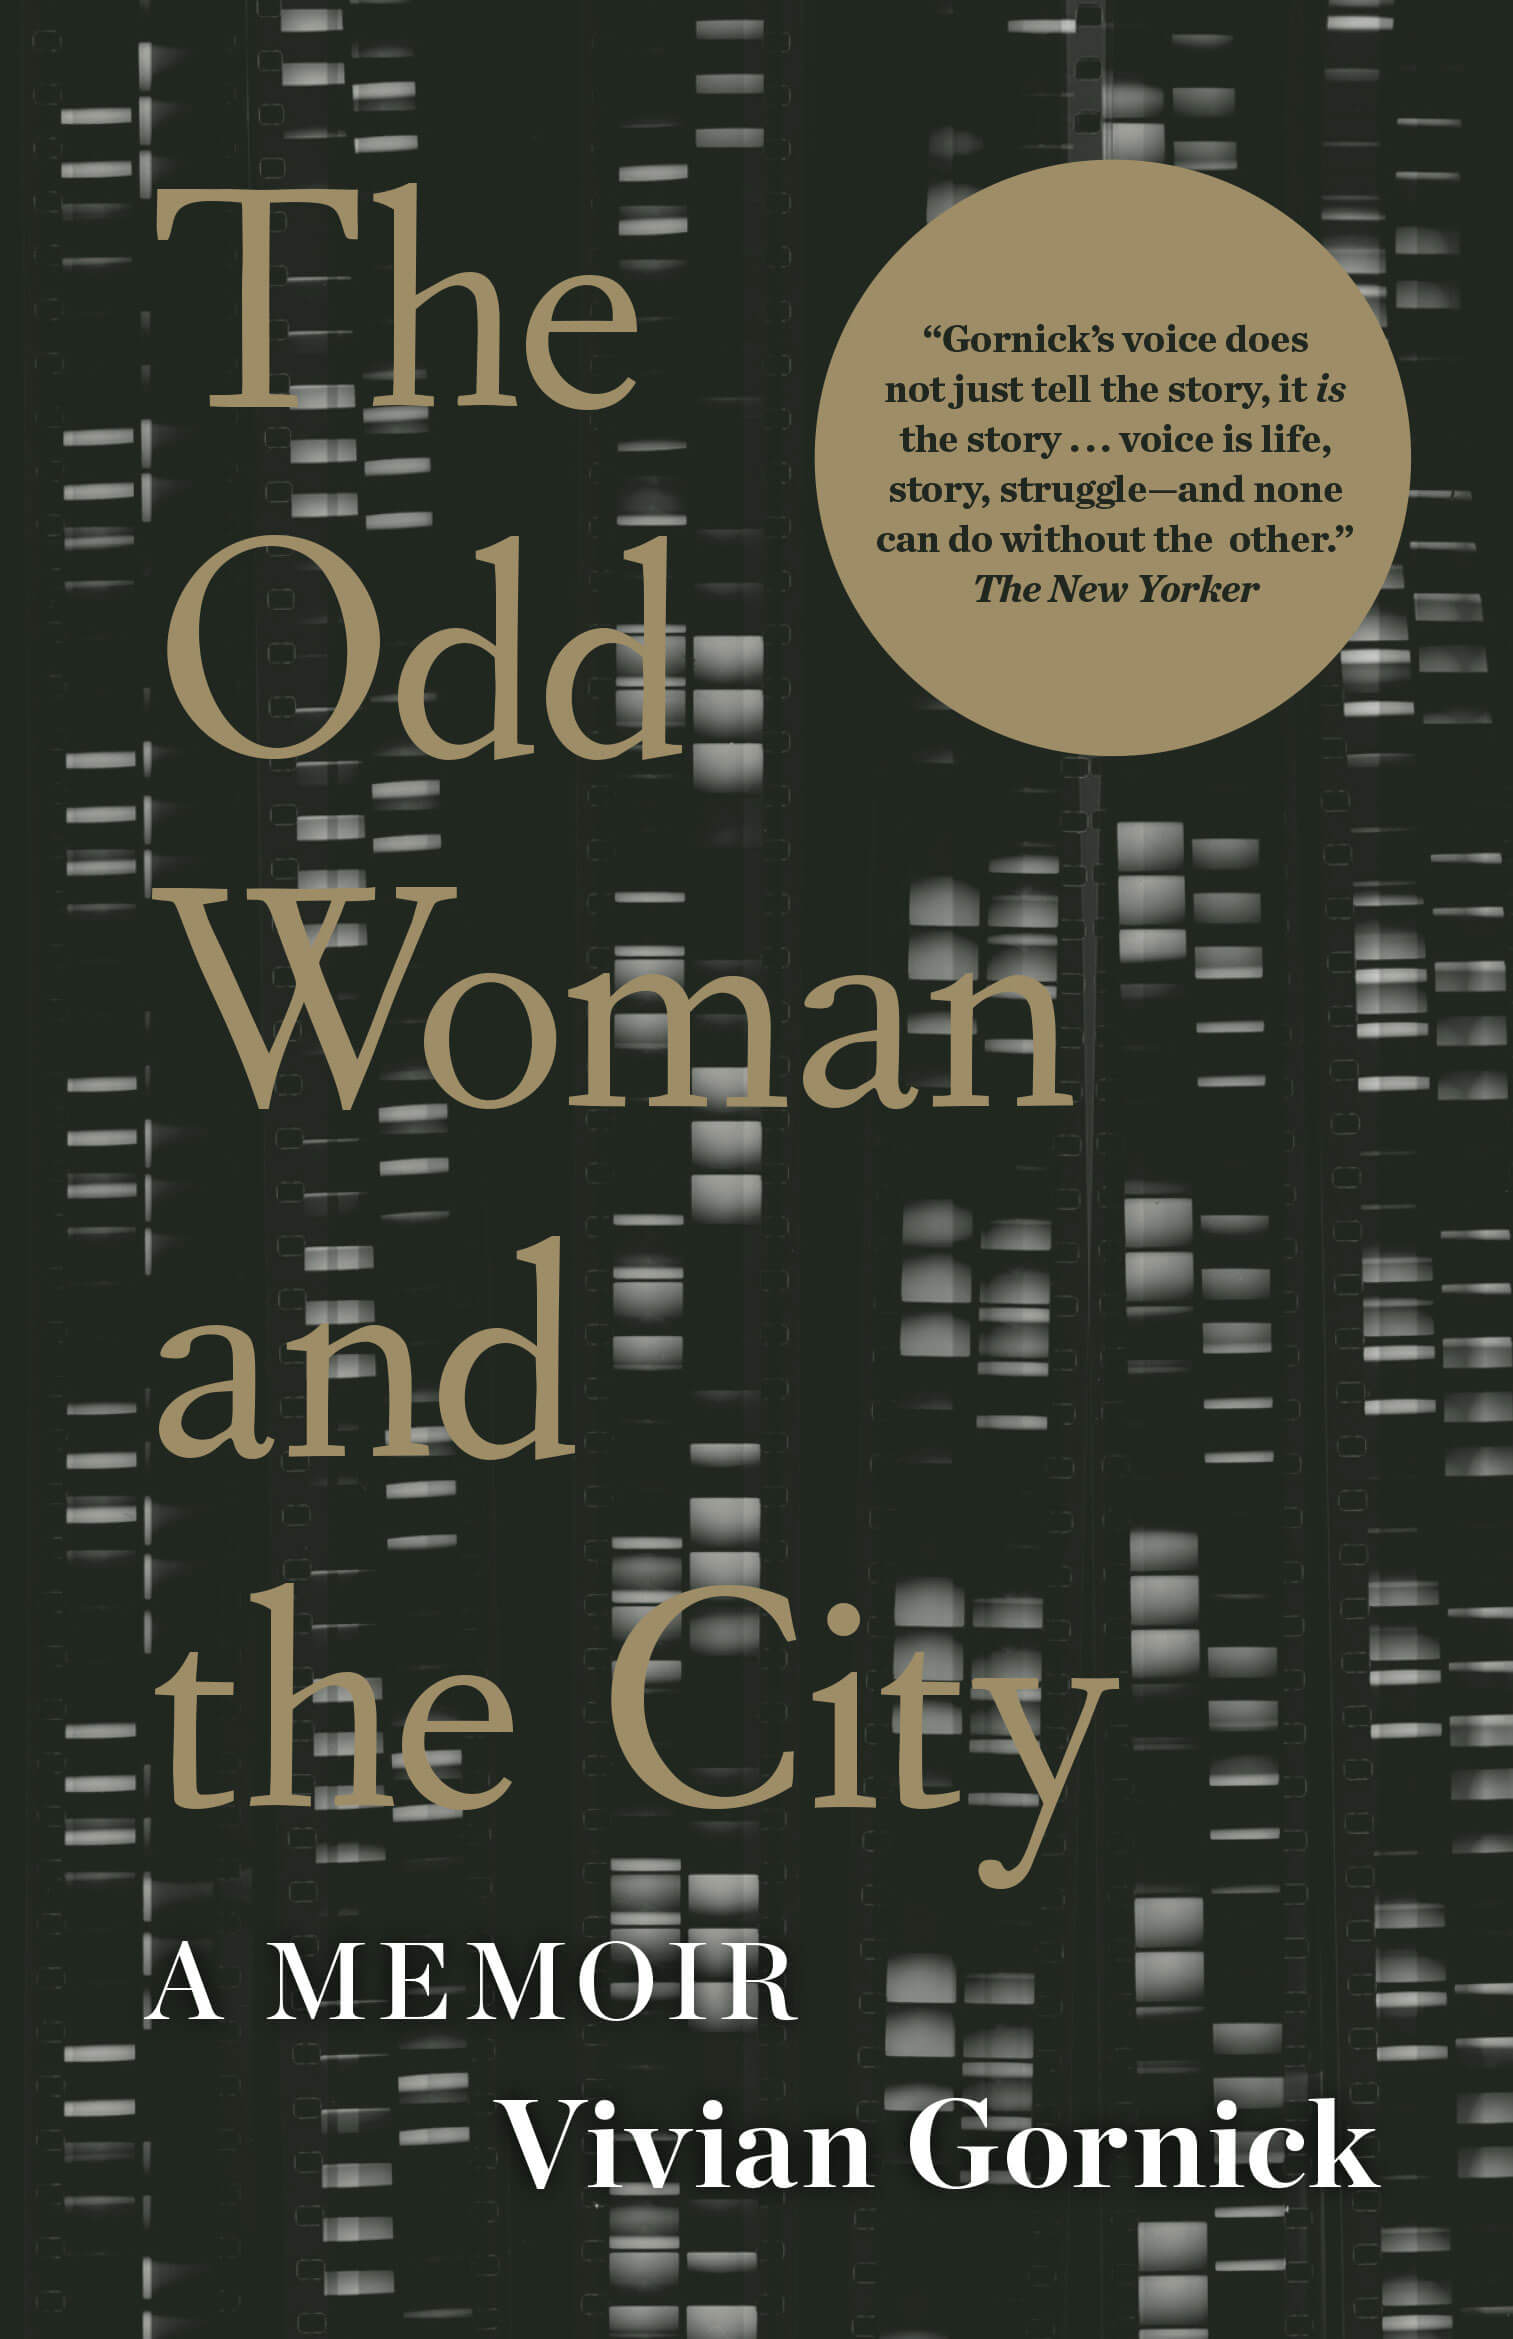 Vivian Gornick's 2015 memoir of her life in New York City, <em>The Odd Woman and the City</em>.